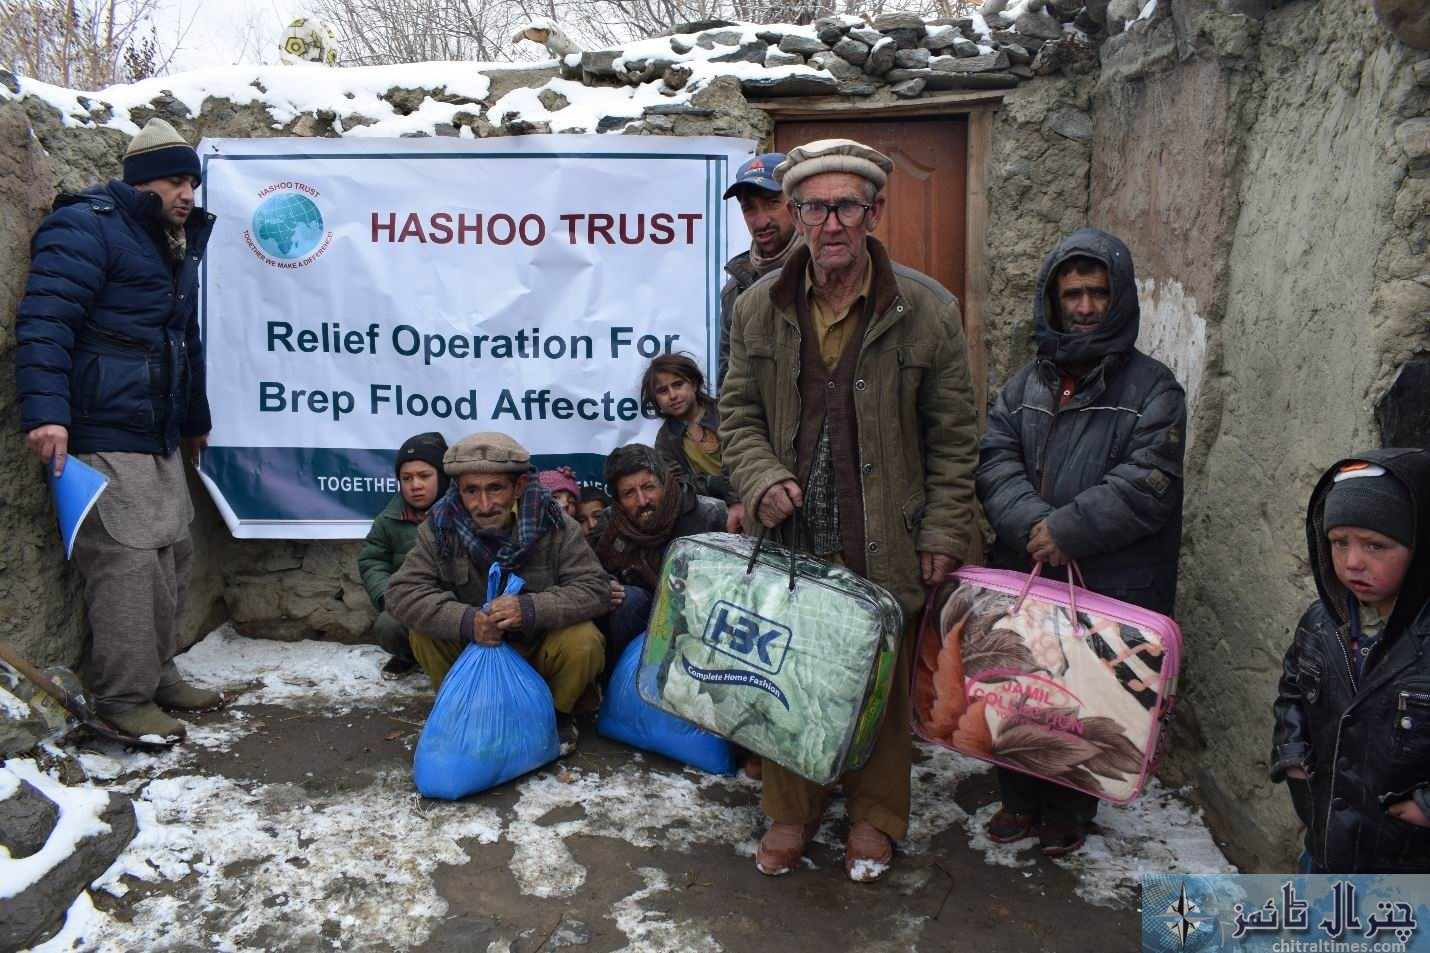 hashoo distributes relief items in brep chitral